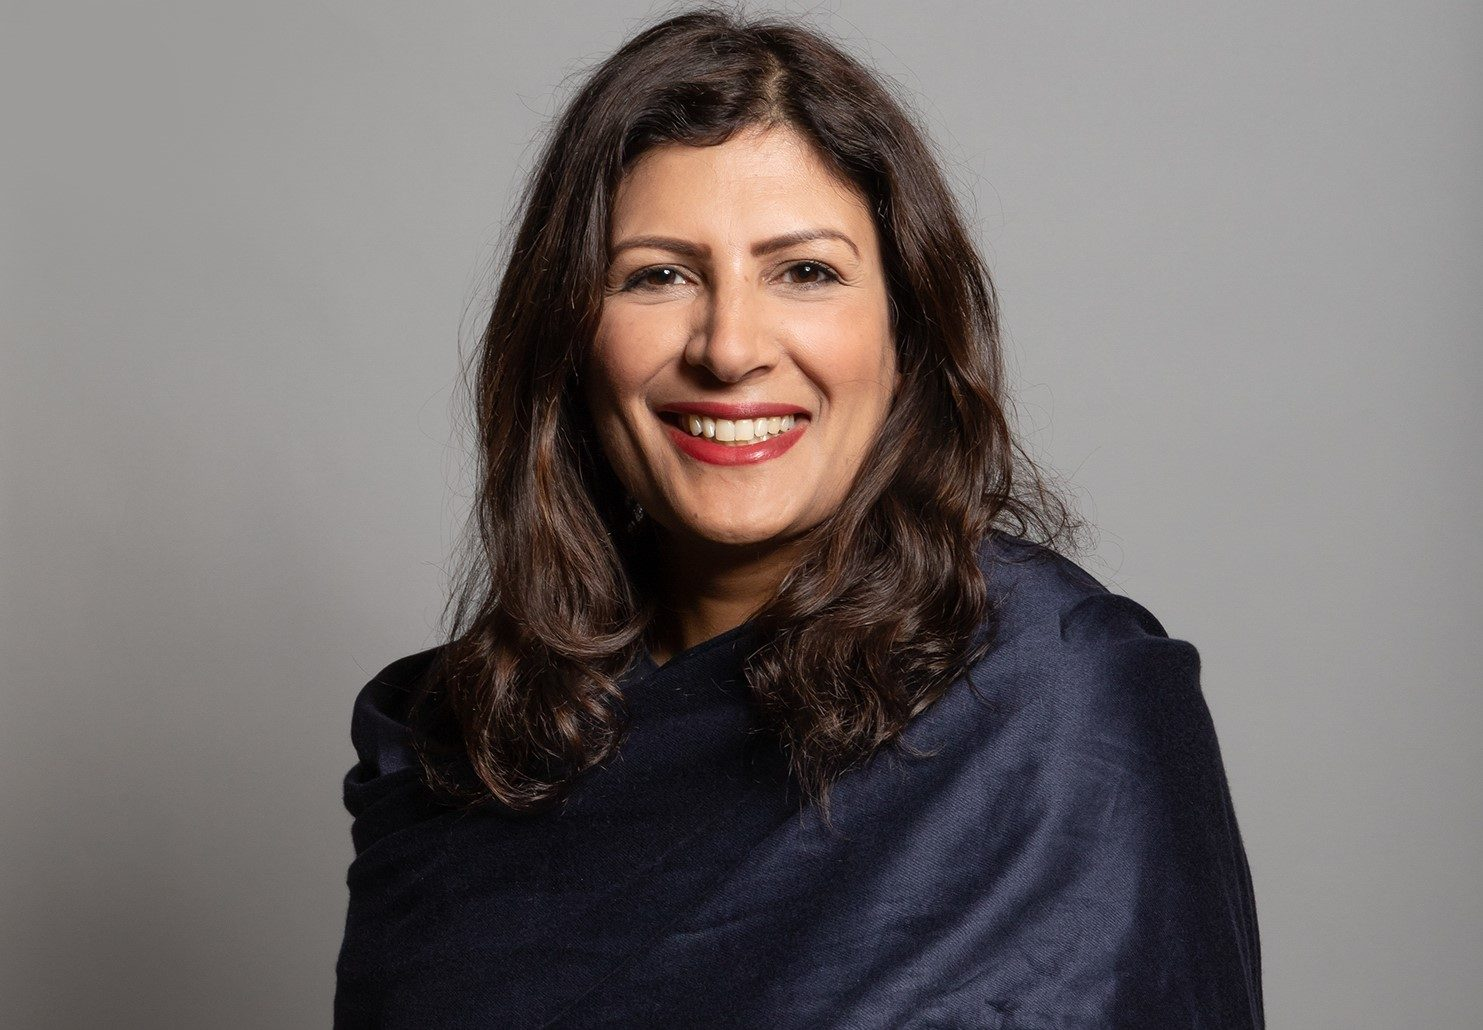 """Birmingham Edgbaston MP Preet Kaur Gill urged Health Secretary Matt Hancock to look into this issue """"to ensure that Sikhs on the front line are not forgotten during this emergency, and that a solution is found to allow them to conduct their vital work safely and without compromising their faith""""."""